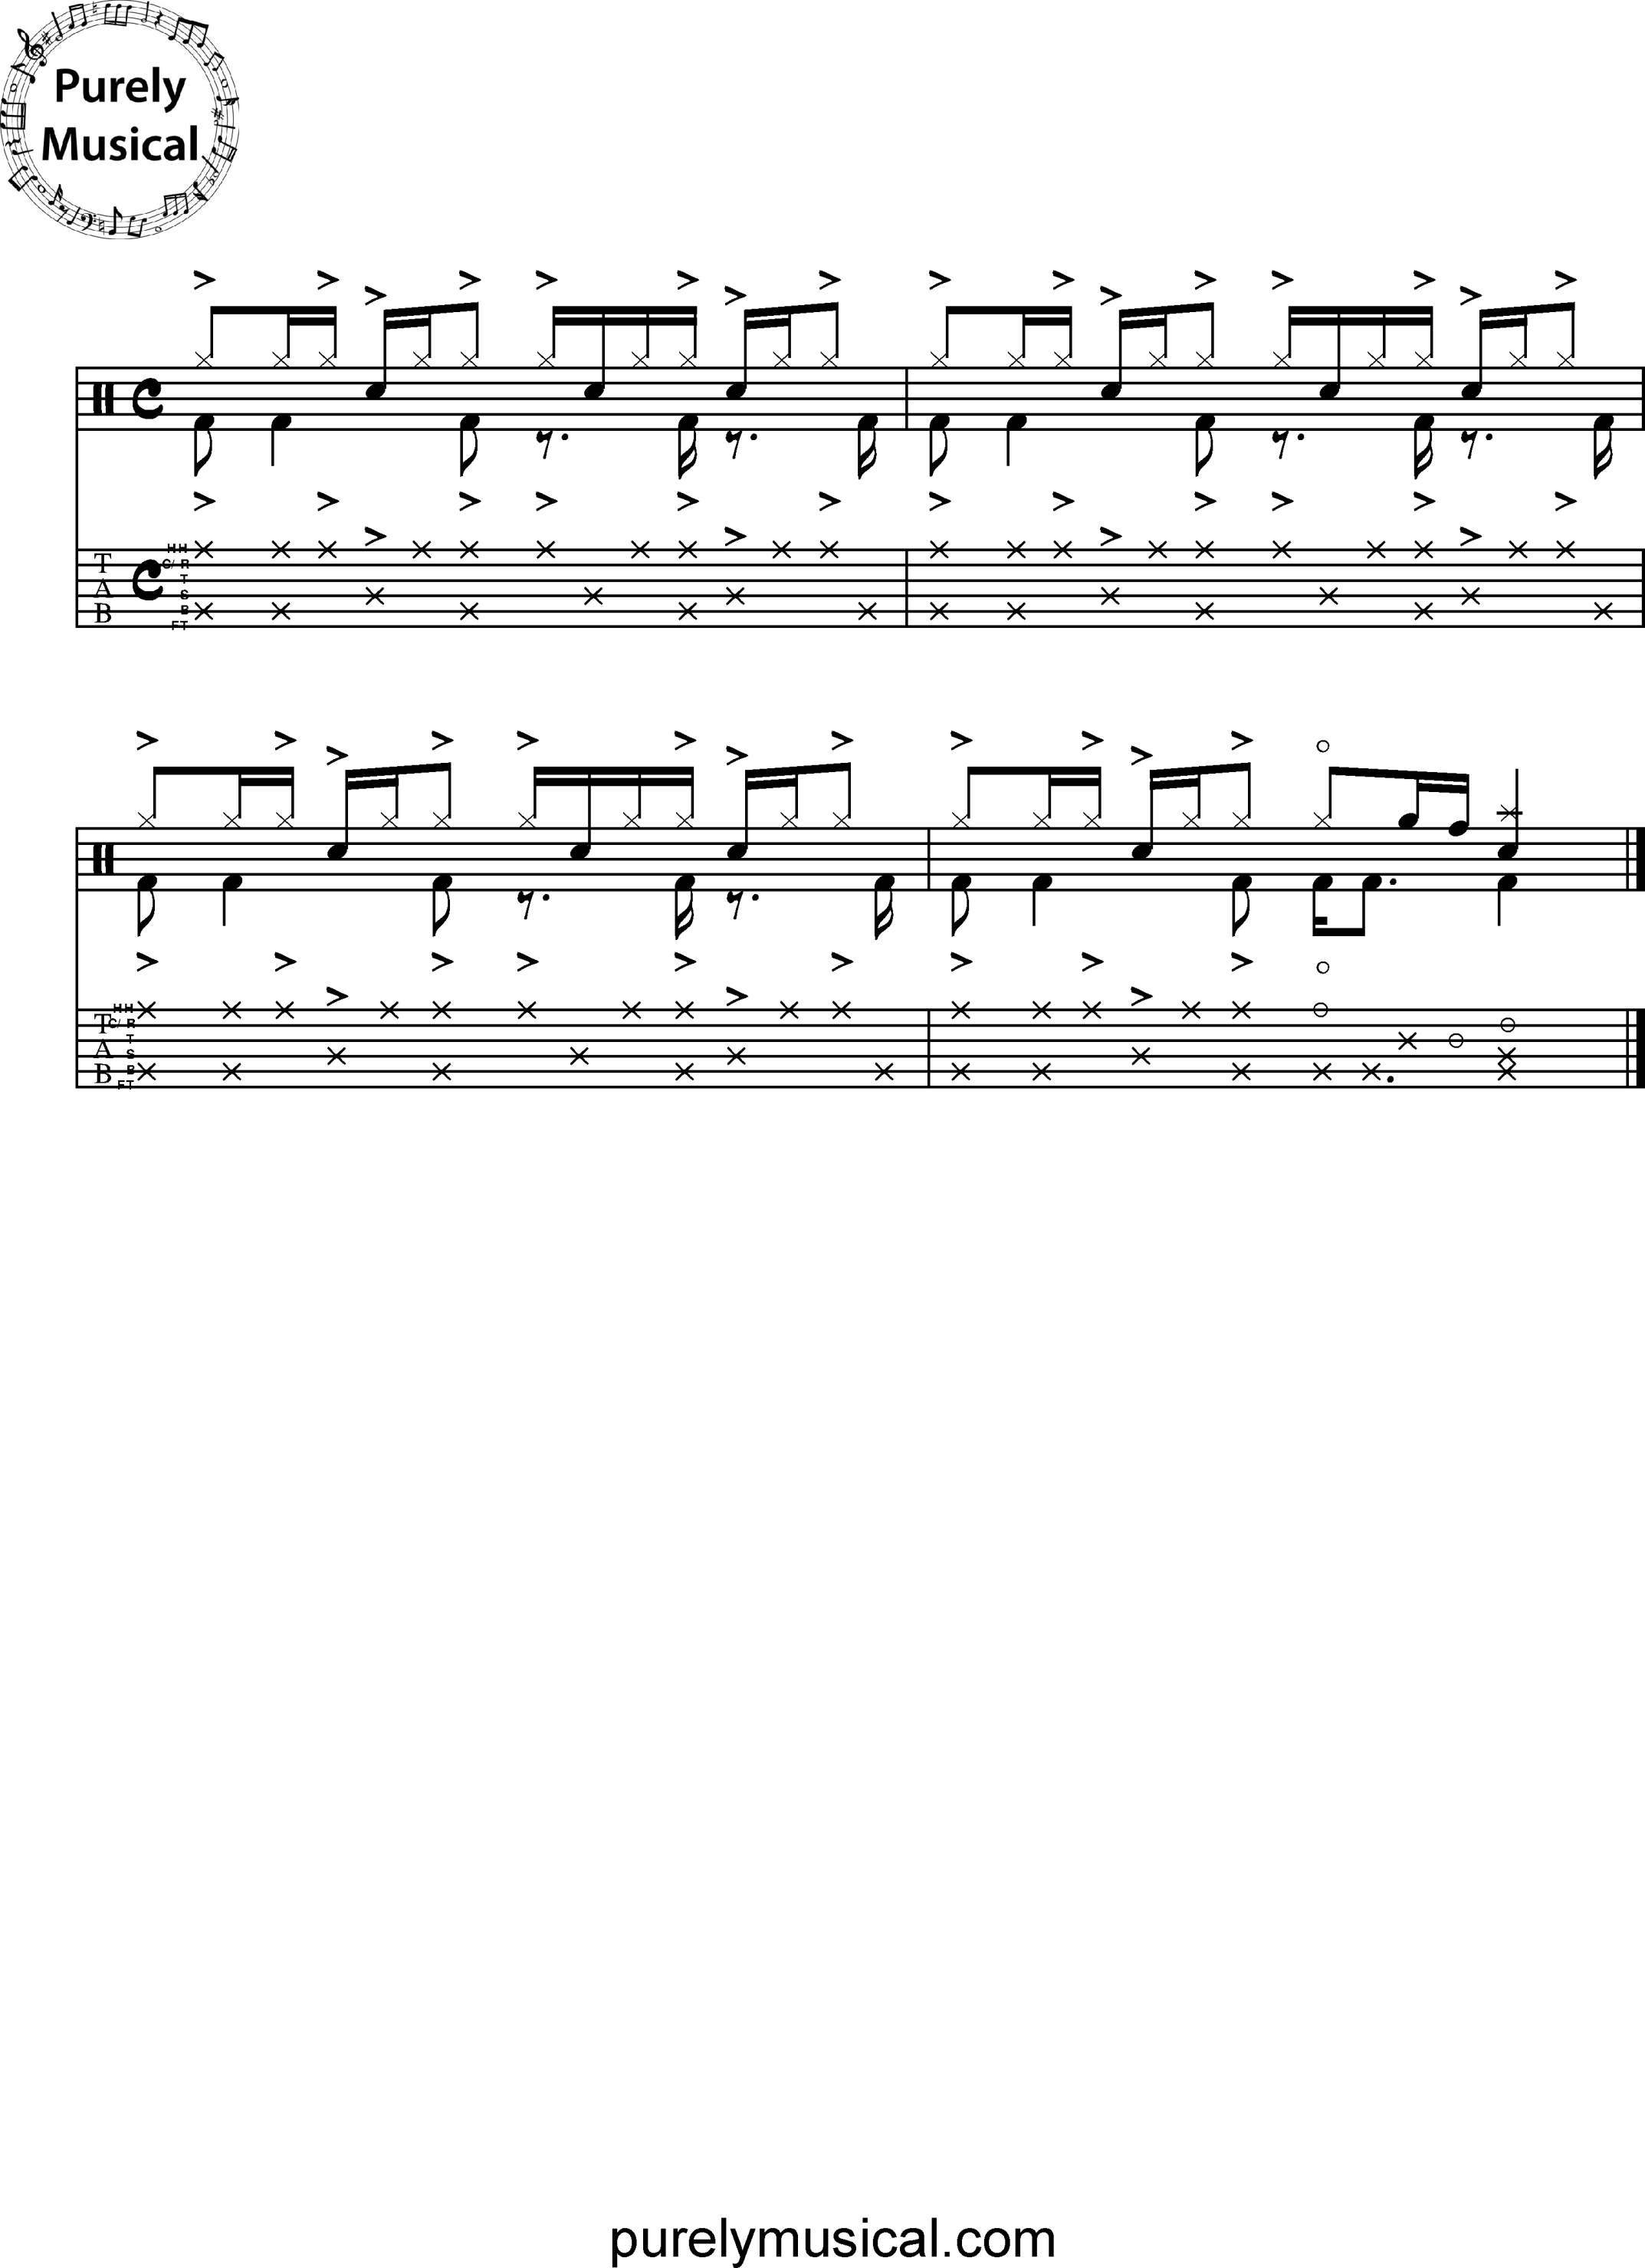 Advanced  Drum Grooves - Funk Grooves Hi-hat Variations Exercise No 1